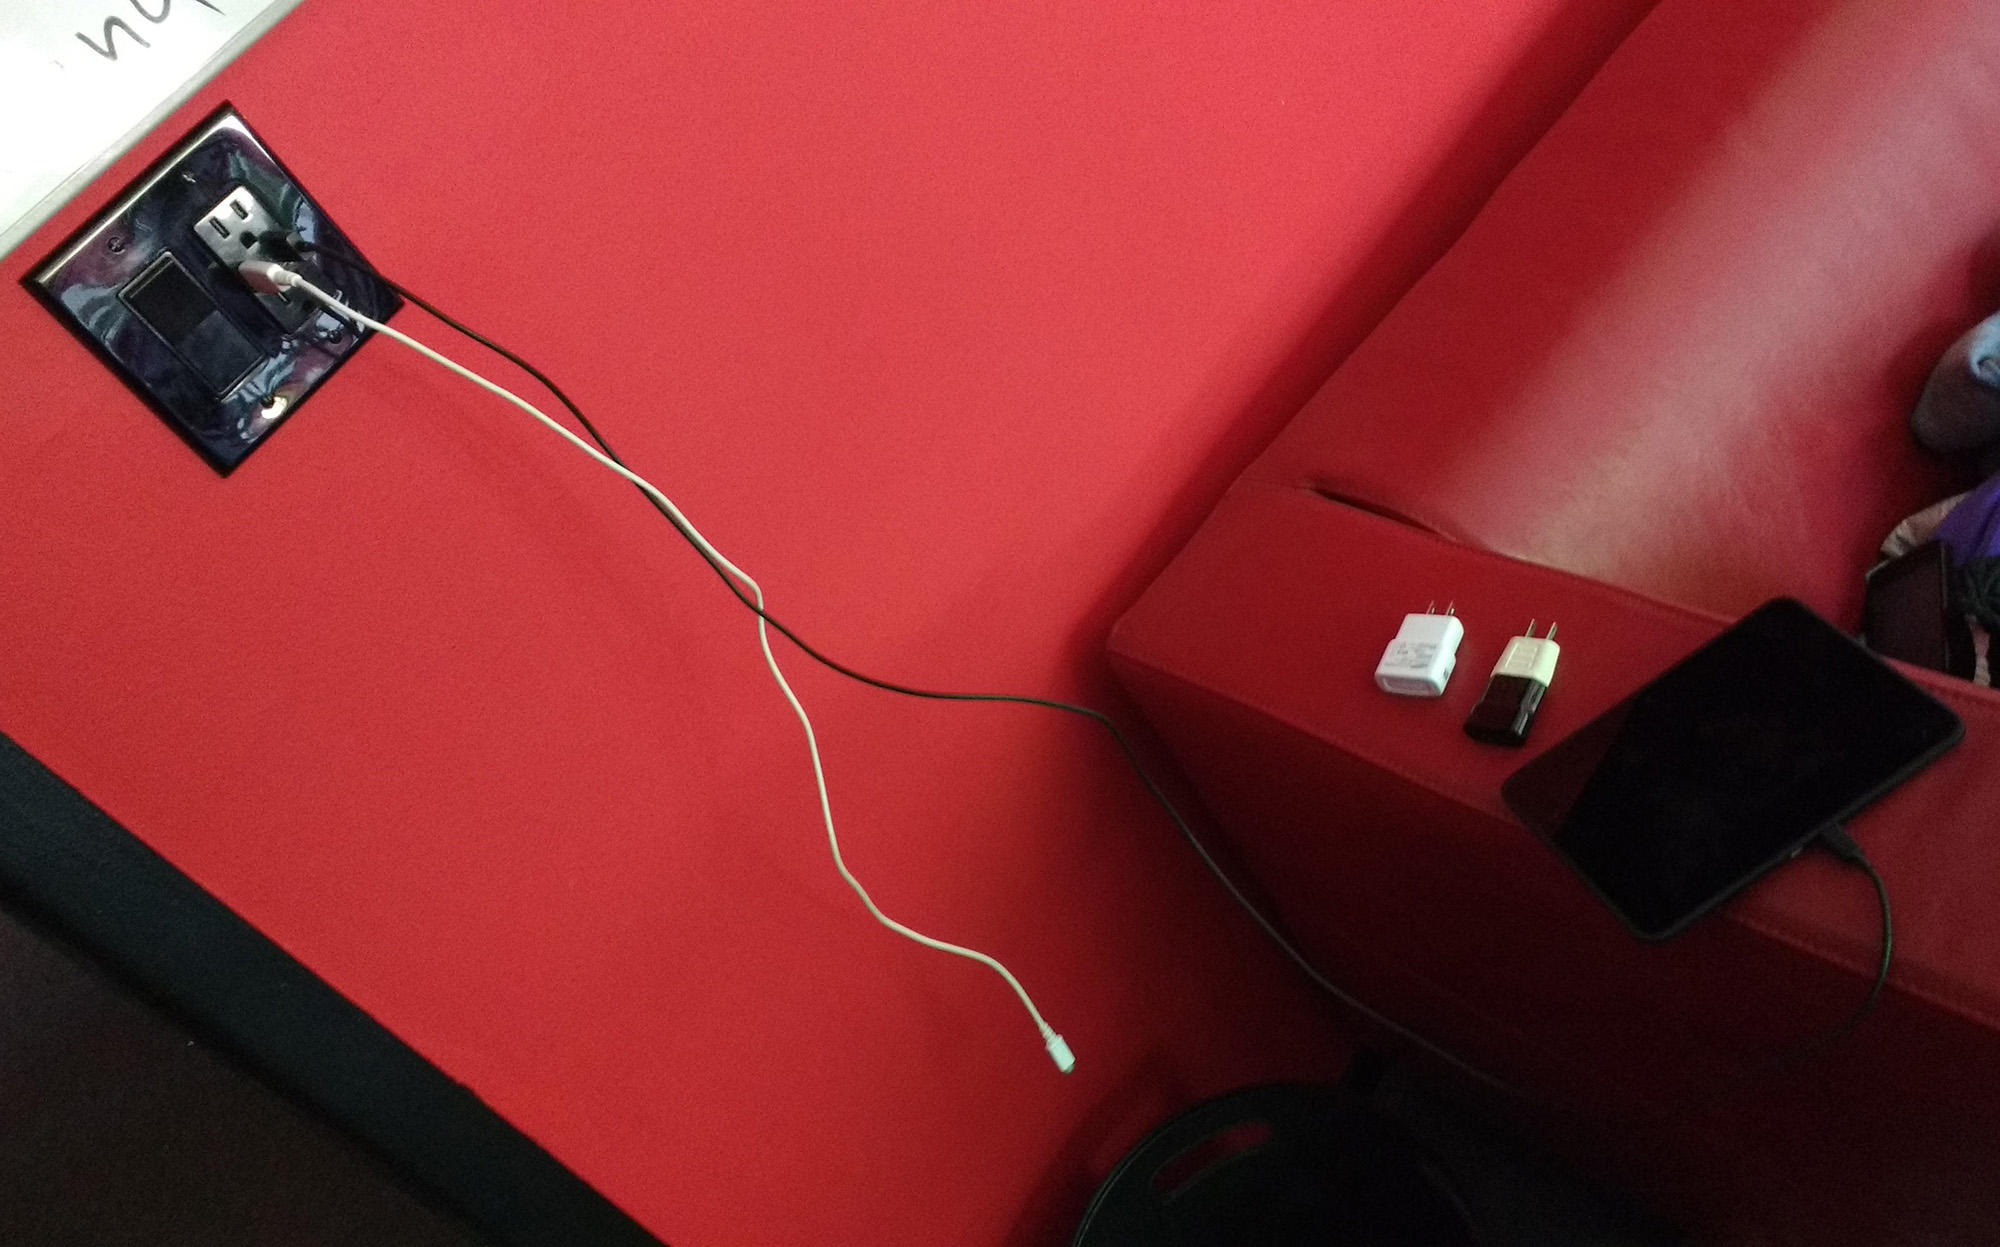 Image of power adapters set aside as a tablet plugs directly into USB wall power